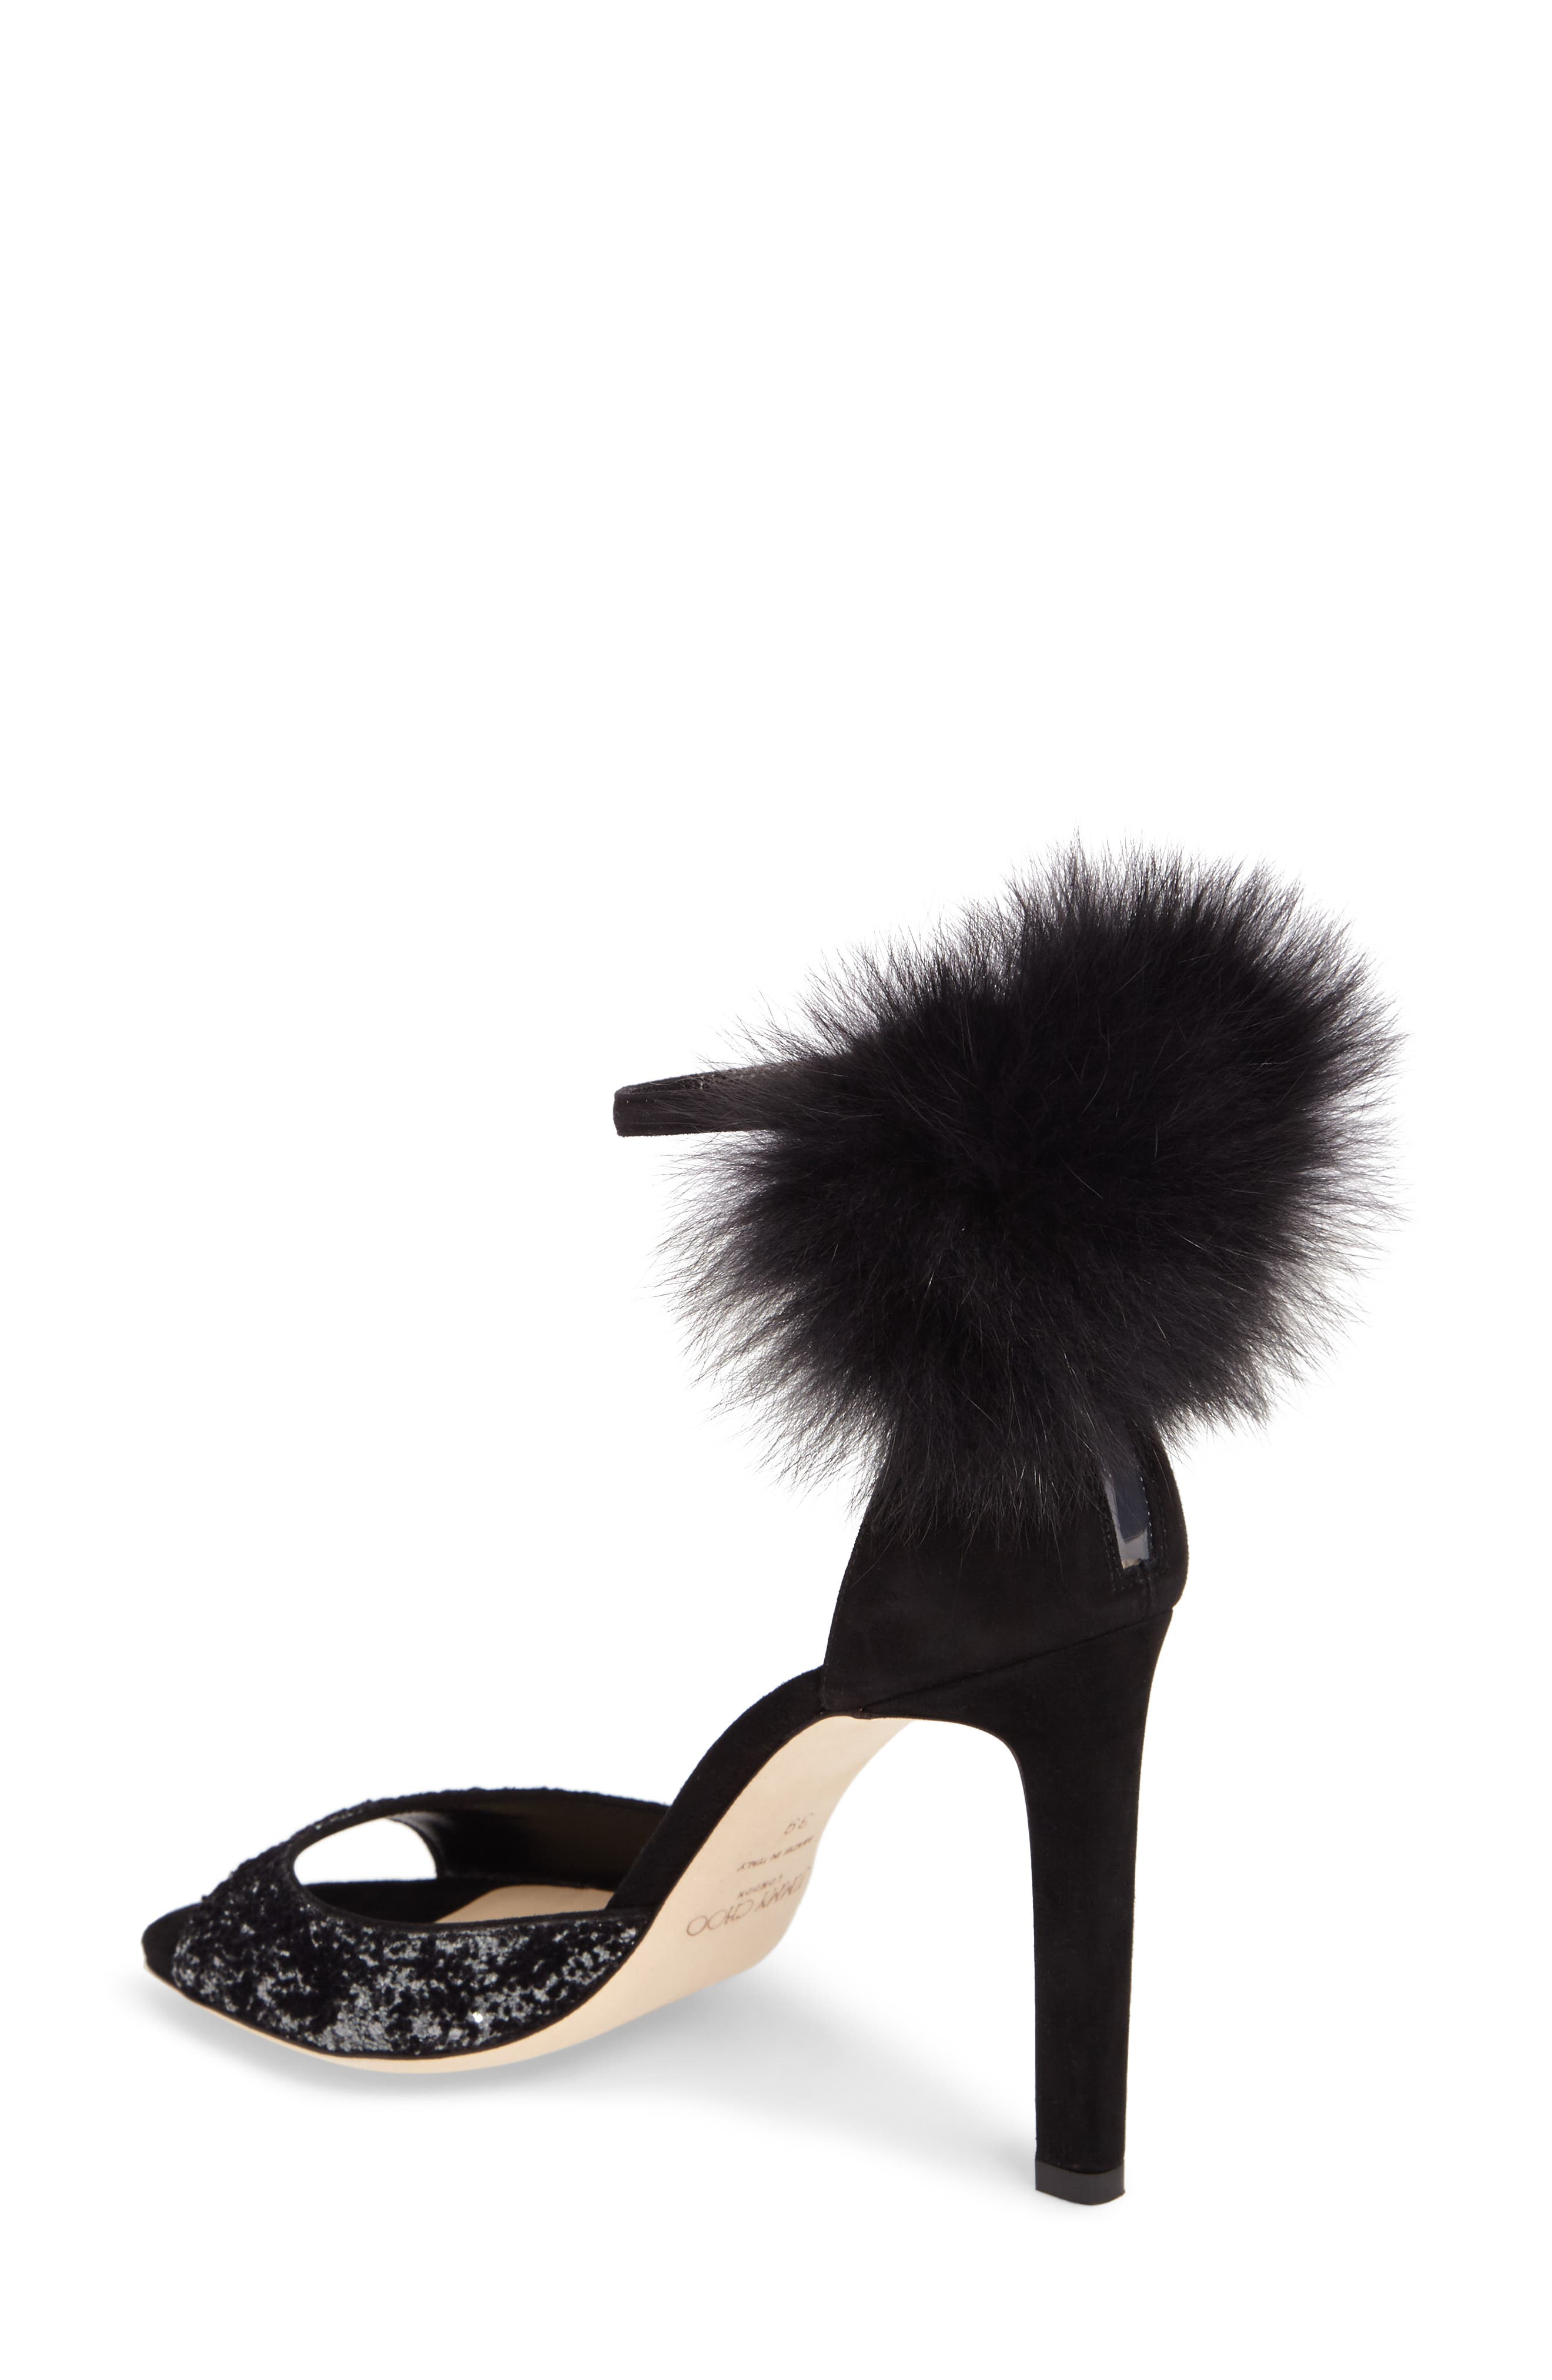 Suri Genuine Fox Fur Sandal,                             Alternate thumbnail 2, color,                             Anthracite/ Black/ Black